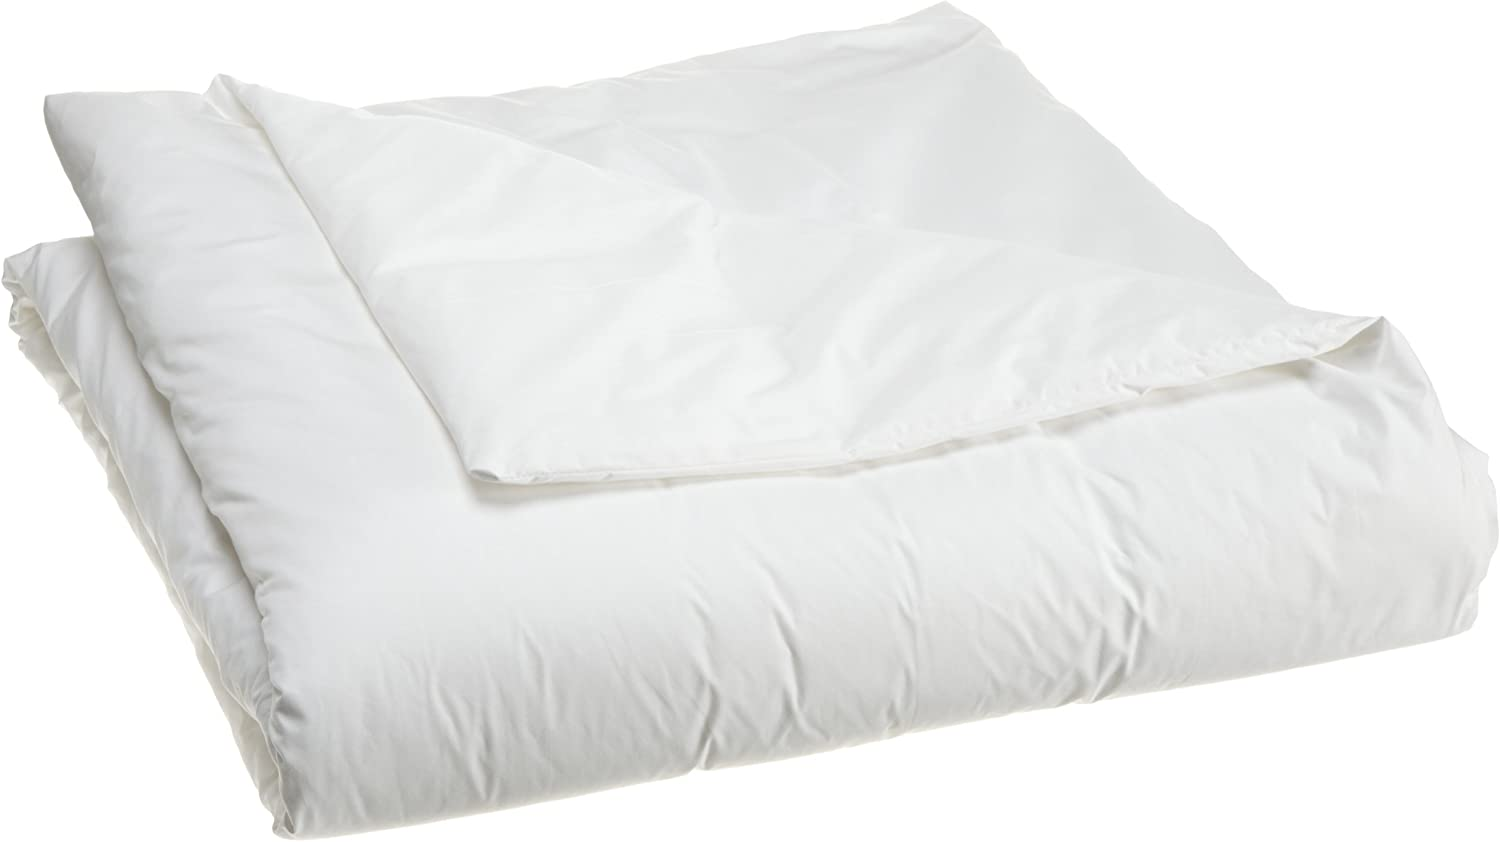 AllerSoft 100-Percent Cotton Bed Bug, Dust Mite & Allergy Control Duvet Protector, Jumbo King